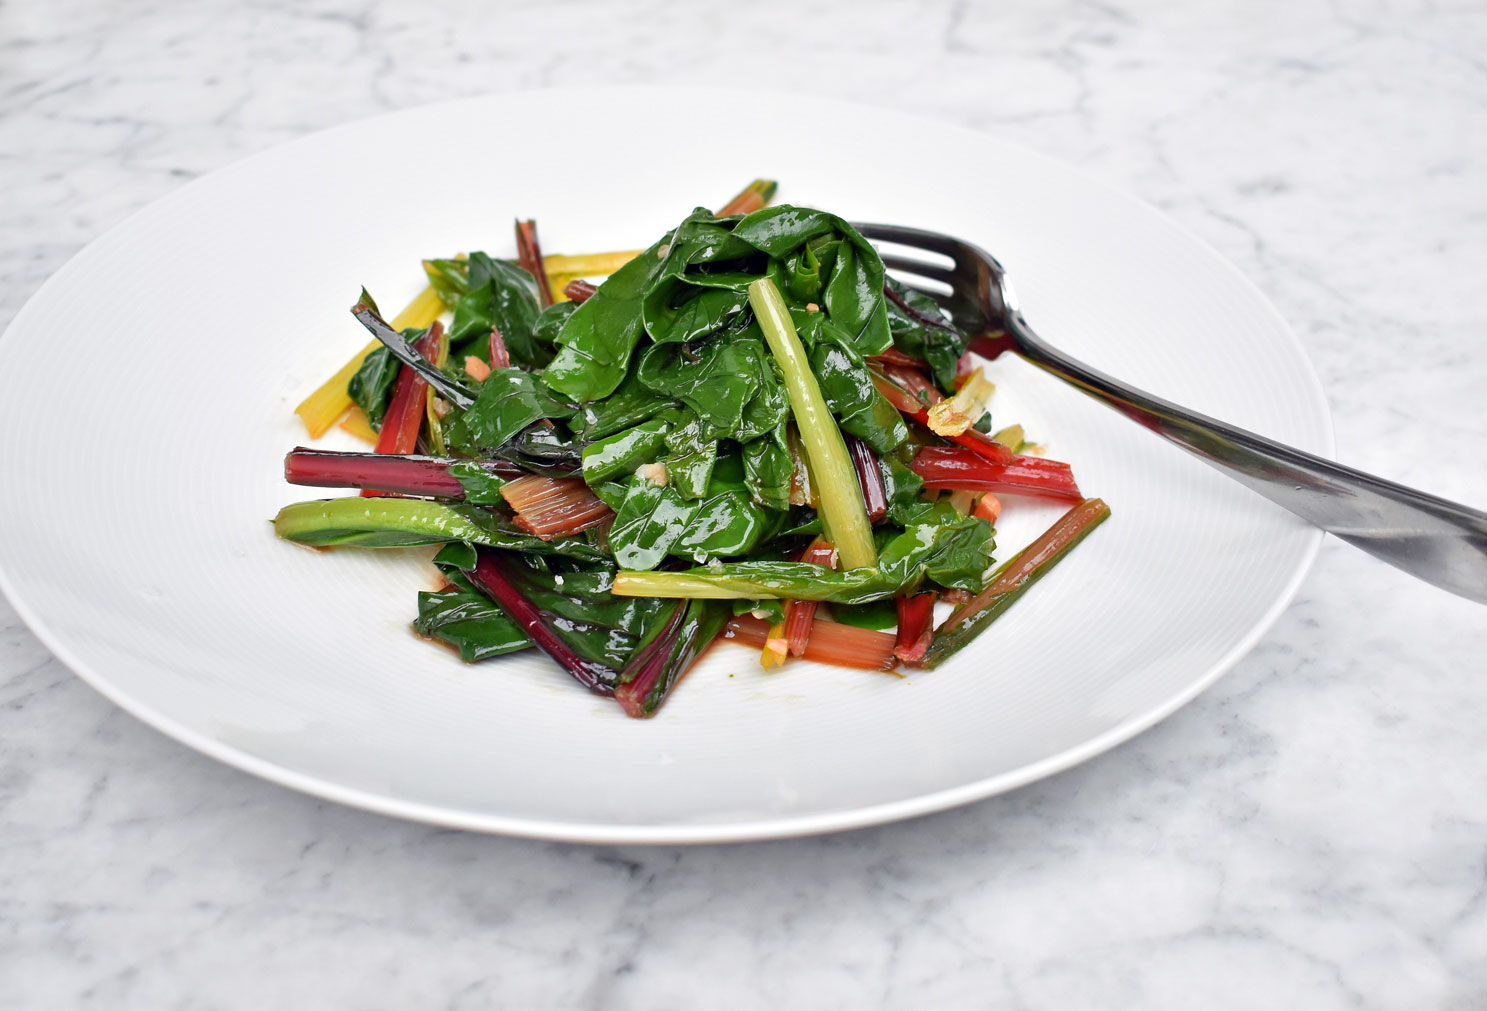 Swiss chard with garlic and extra virgin